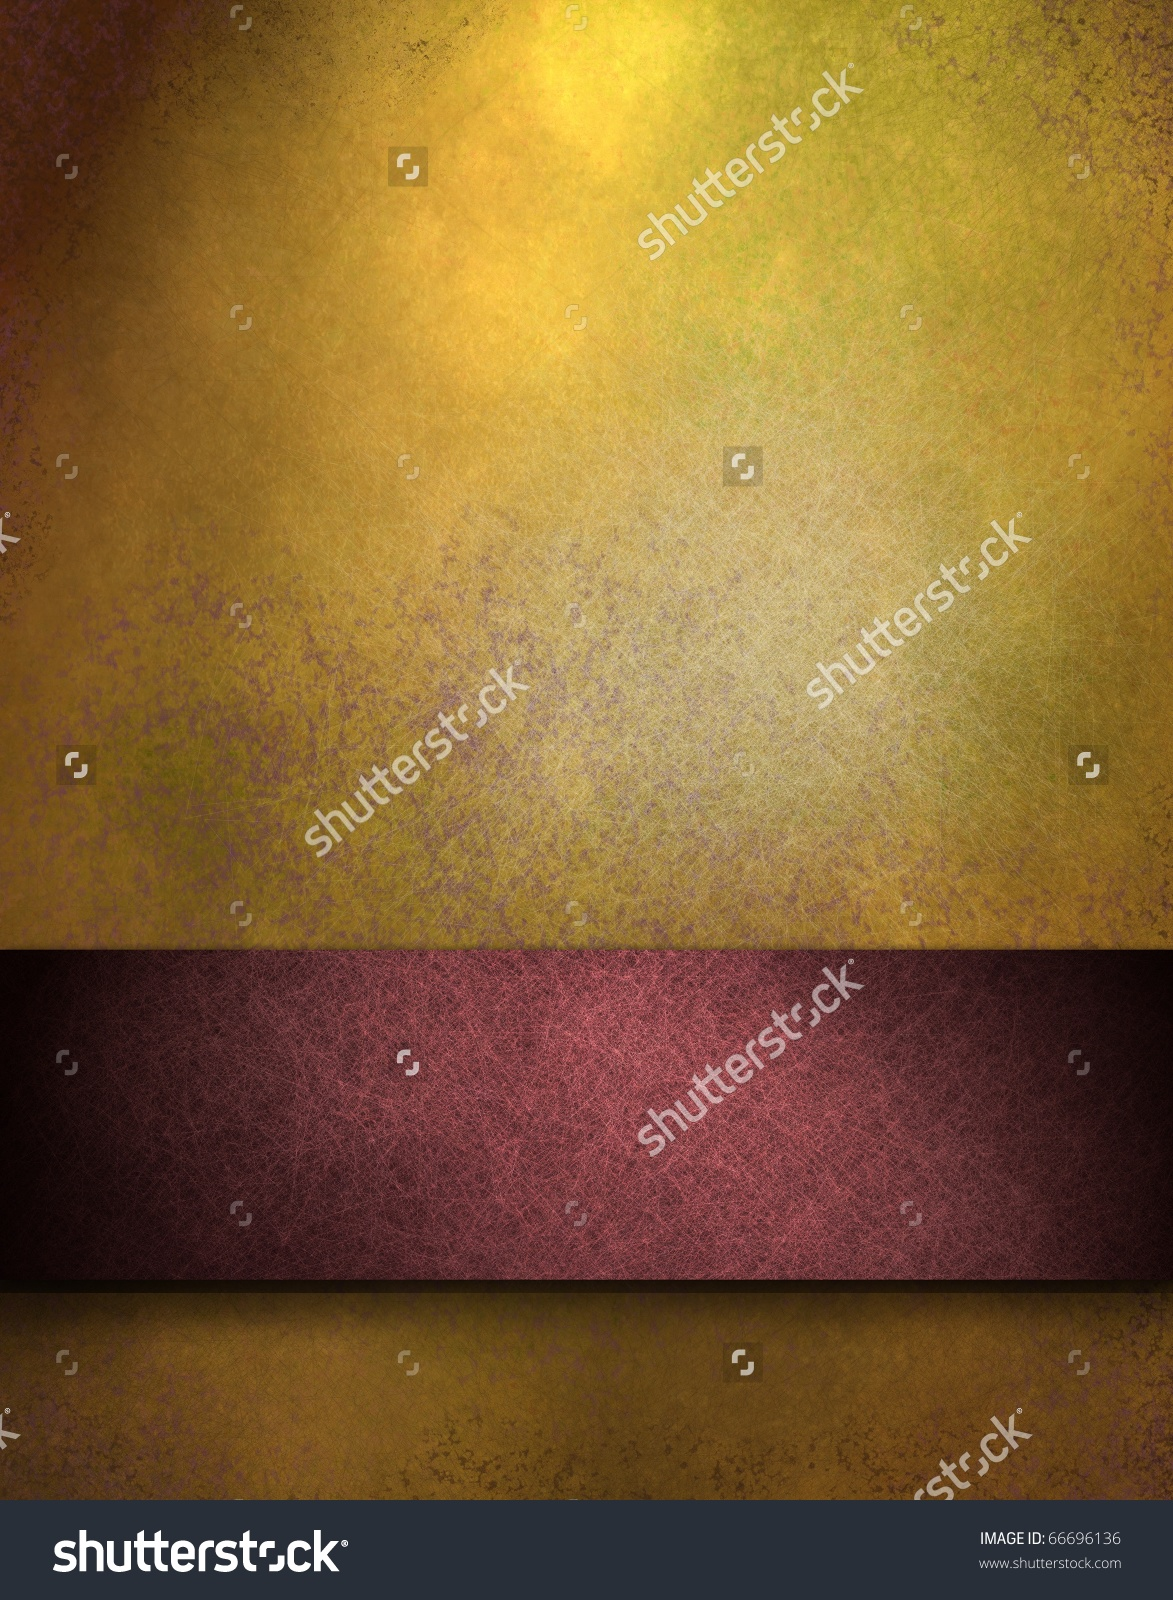 stock photo elegant gold distressed background with texture and 1173x1600